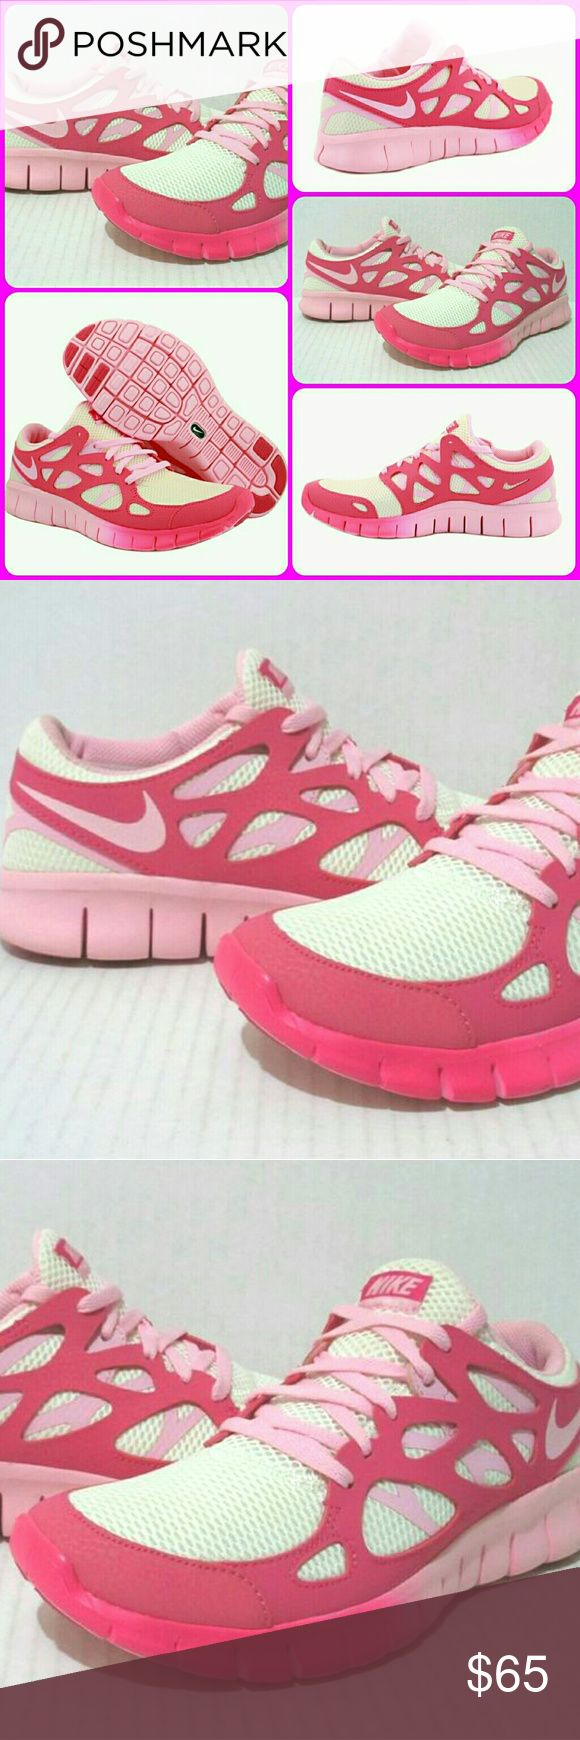 ?? NIKE FREE RUN 2 PINK ION RUNNING TENNIS SHOES ?? WAY COOL LOOKIN NIKE FREE RUN 2 EXT running shoes in ION PINK/PINK FORCE 2tone color combo...they are a LADIES SIZE-9 & in excellent nearly new condition with very minimal wear ( only worn 2-3 times) Nike Shoes Athletic Shoes